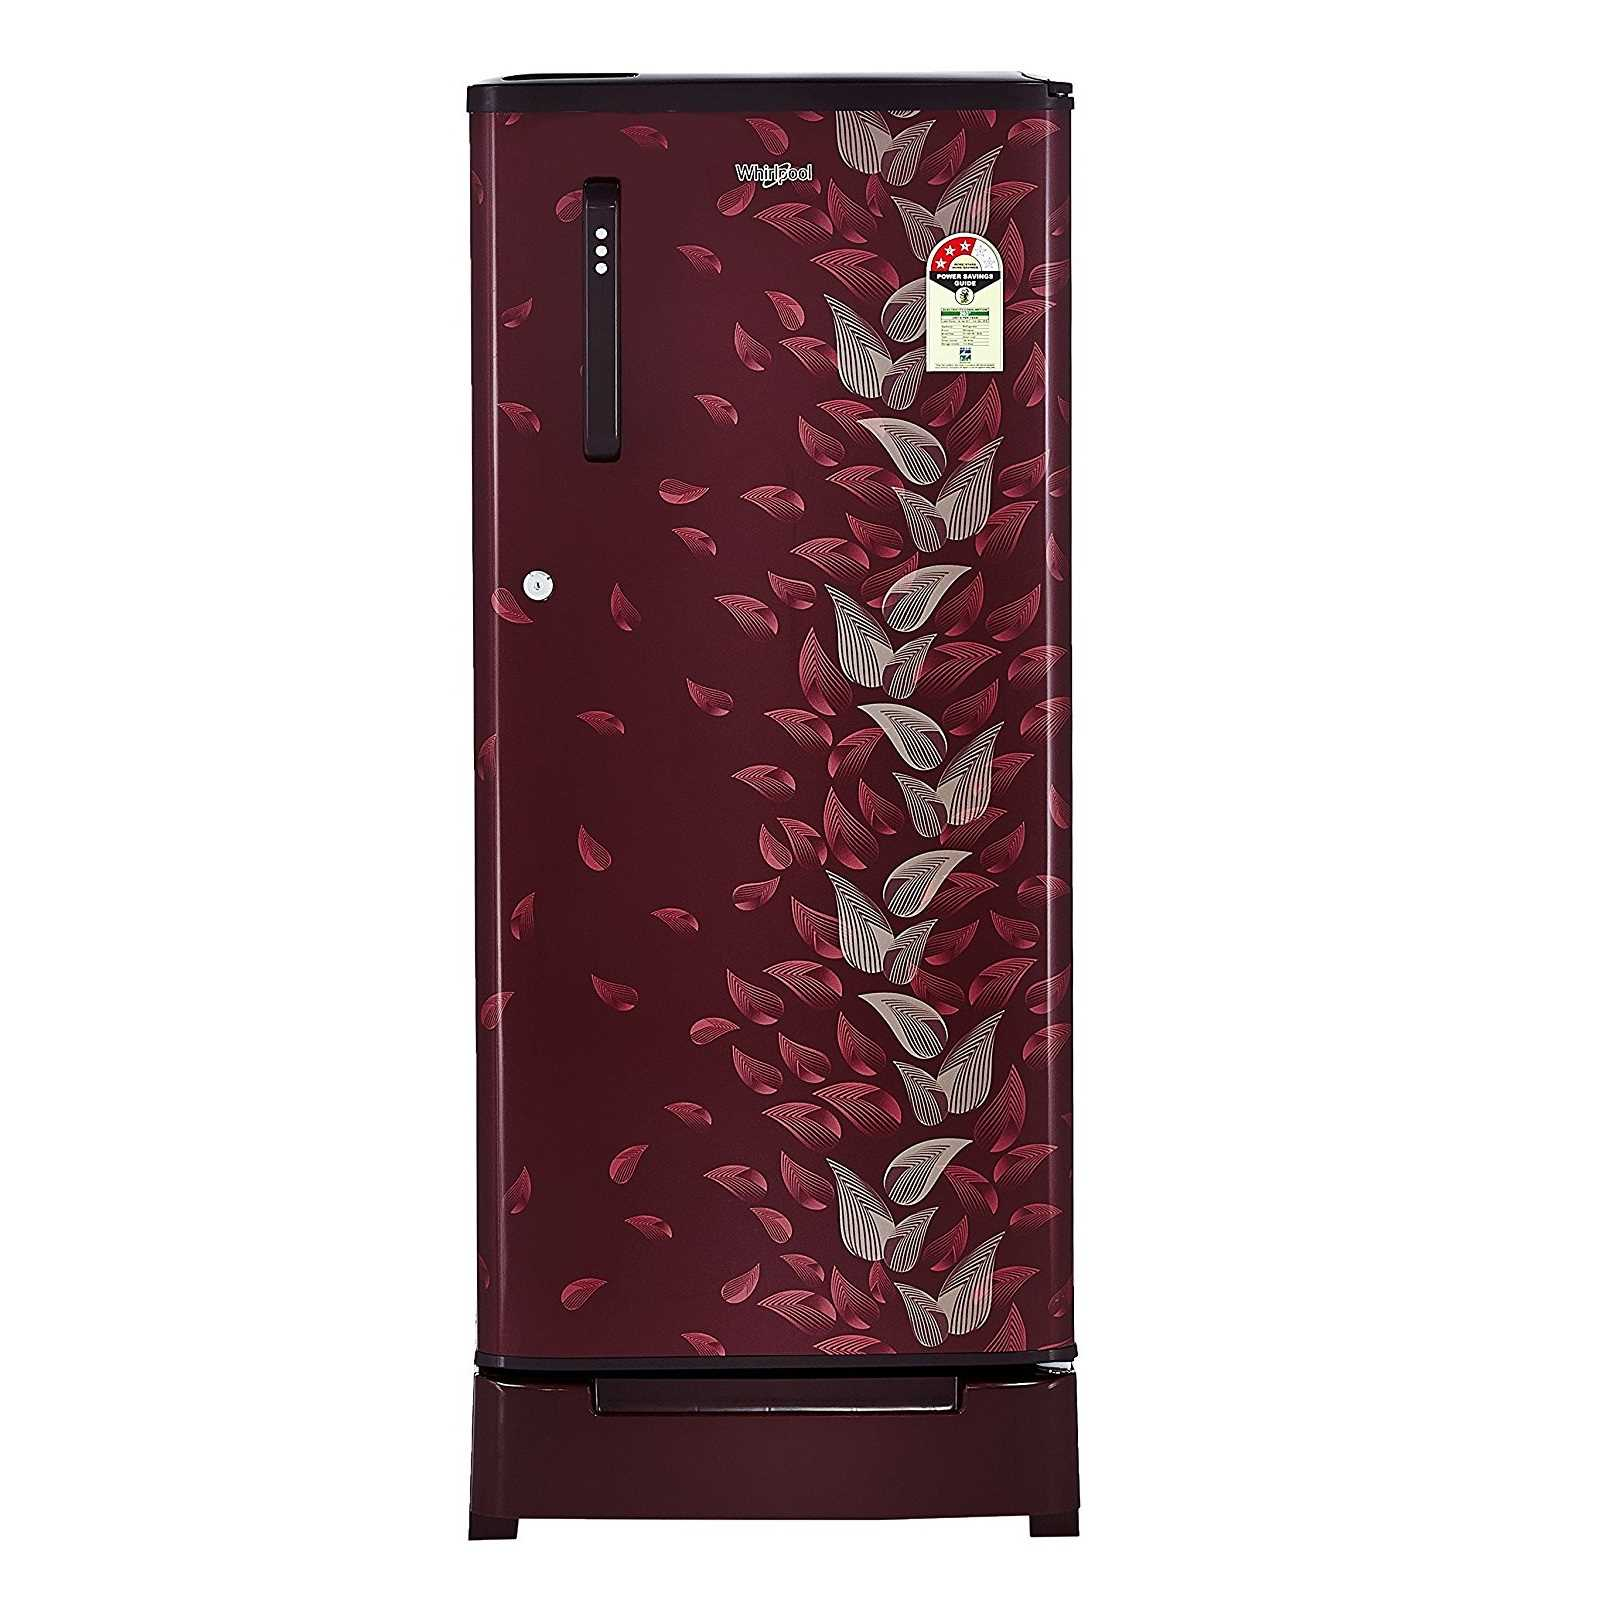 Whirlpool WDE 205 Roy 3S 190 Litres Direct Cool Single Door Refrigerator